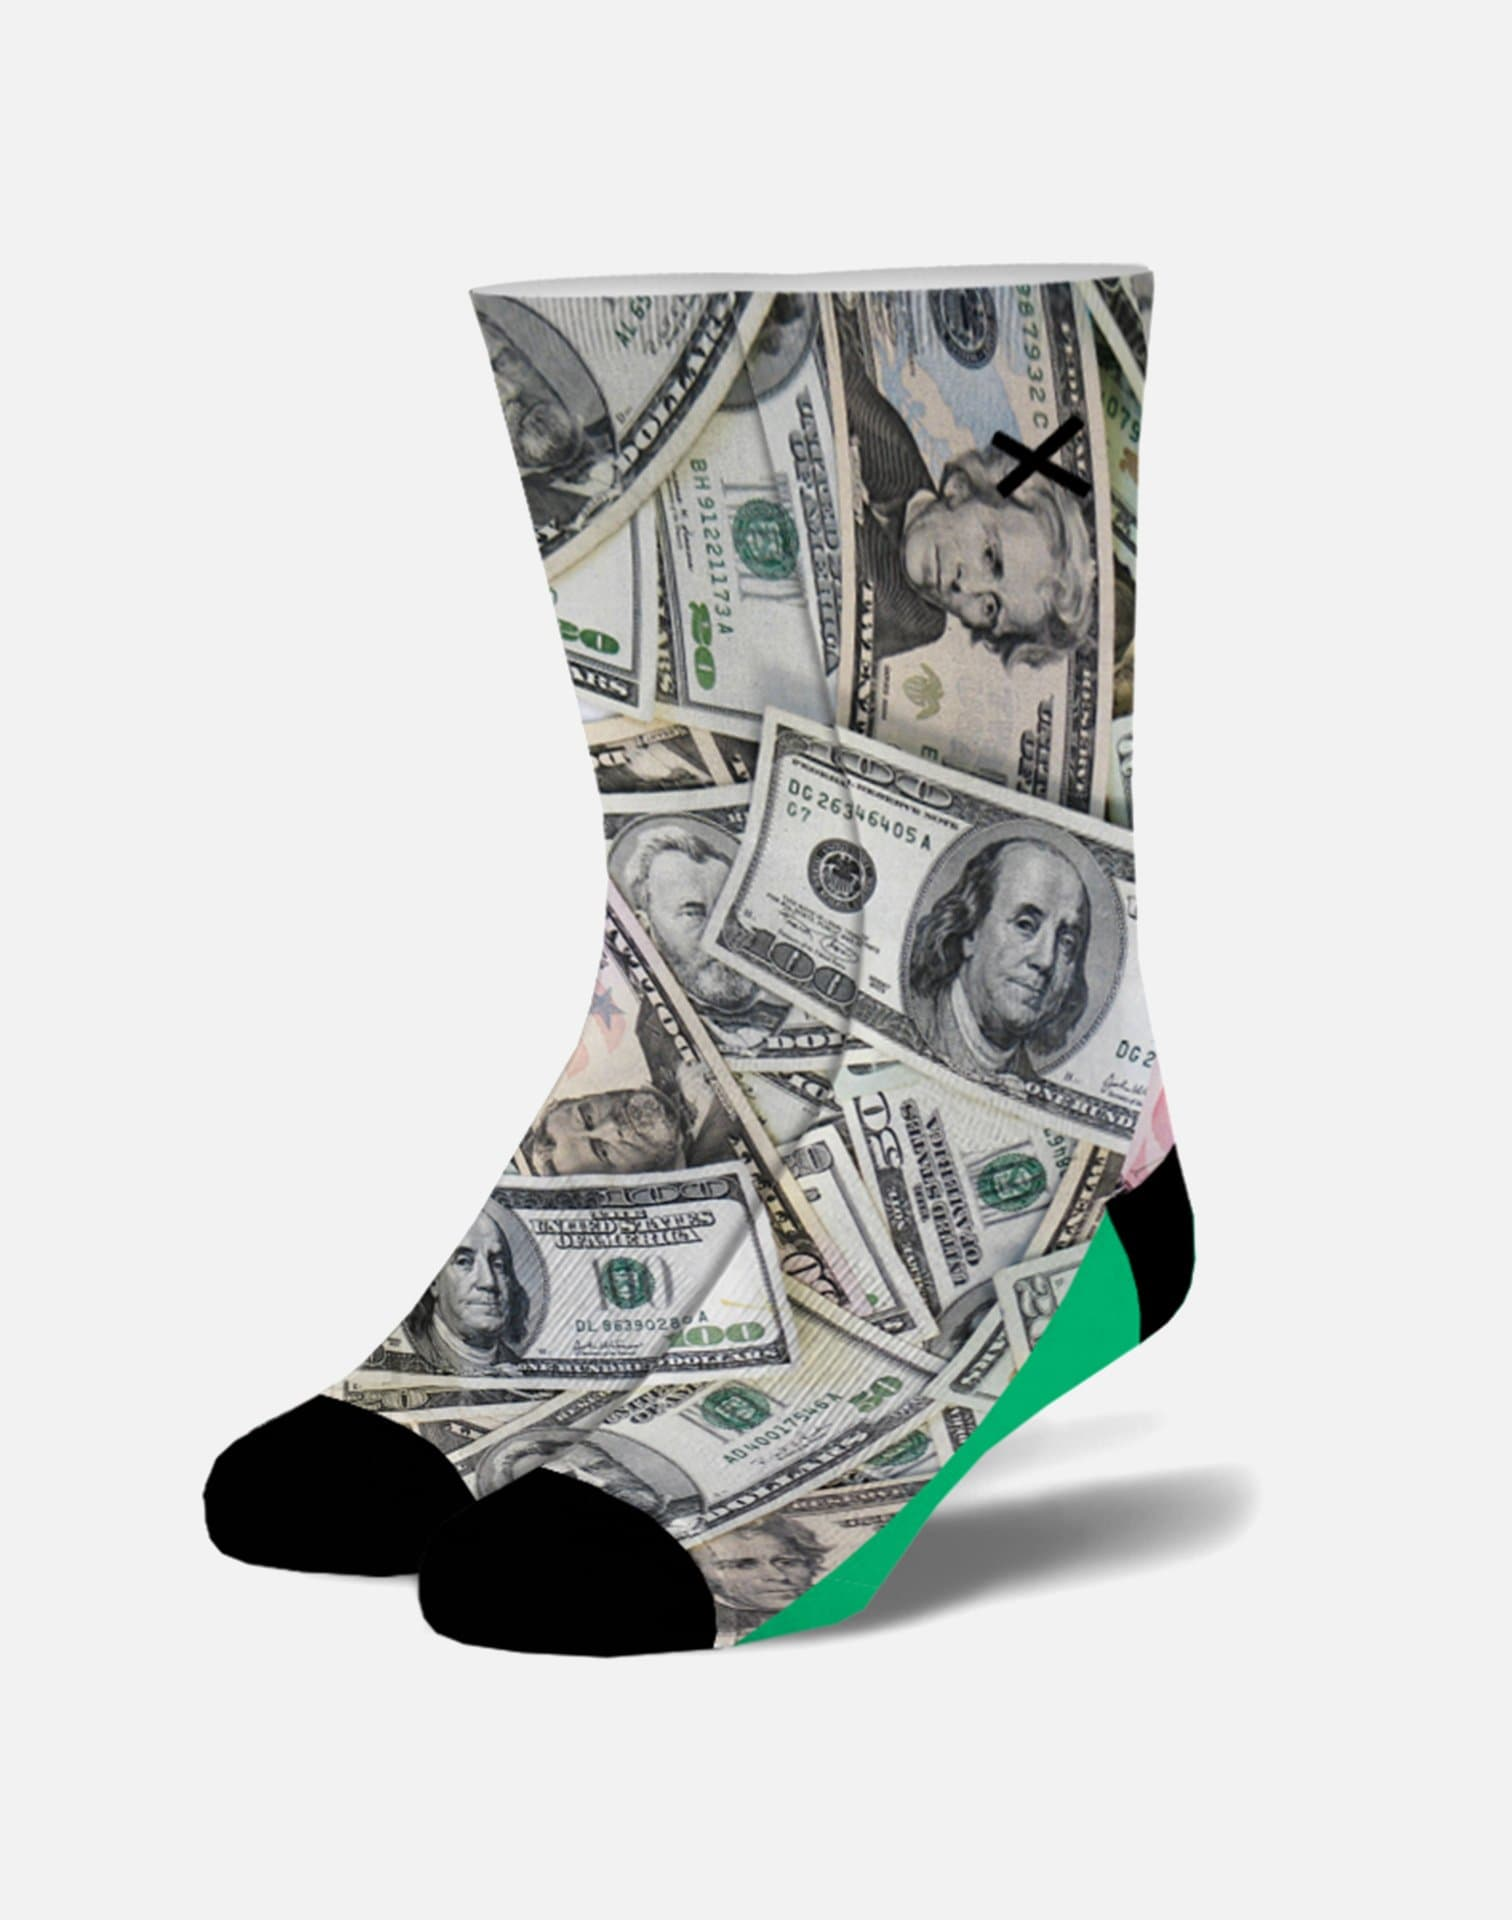 Odd Sox Get Money Socks